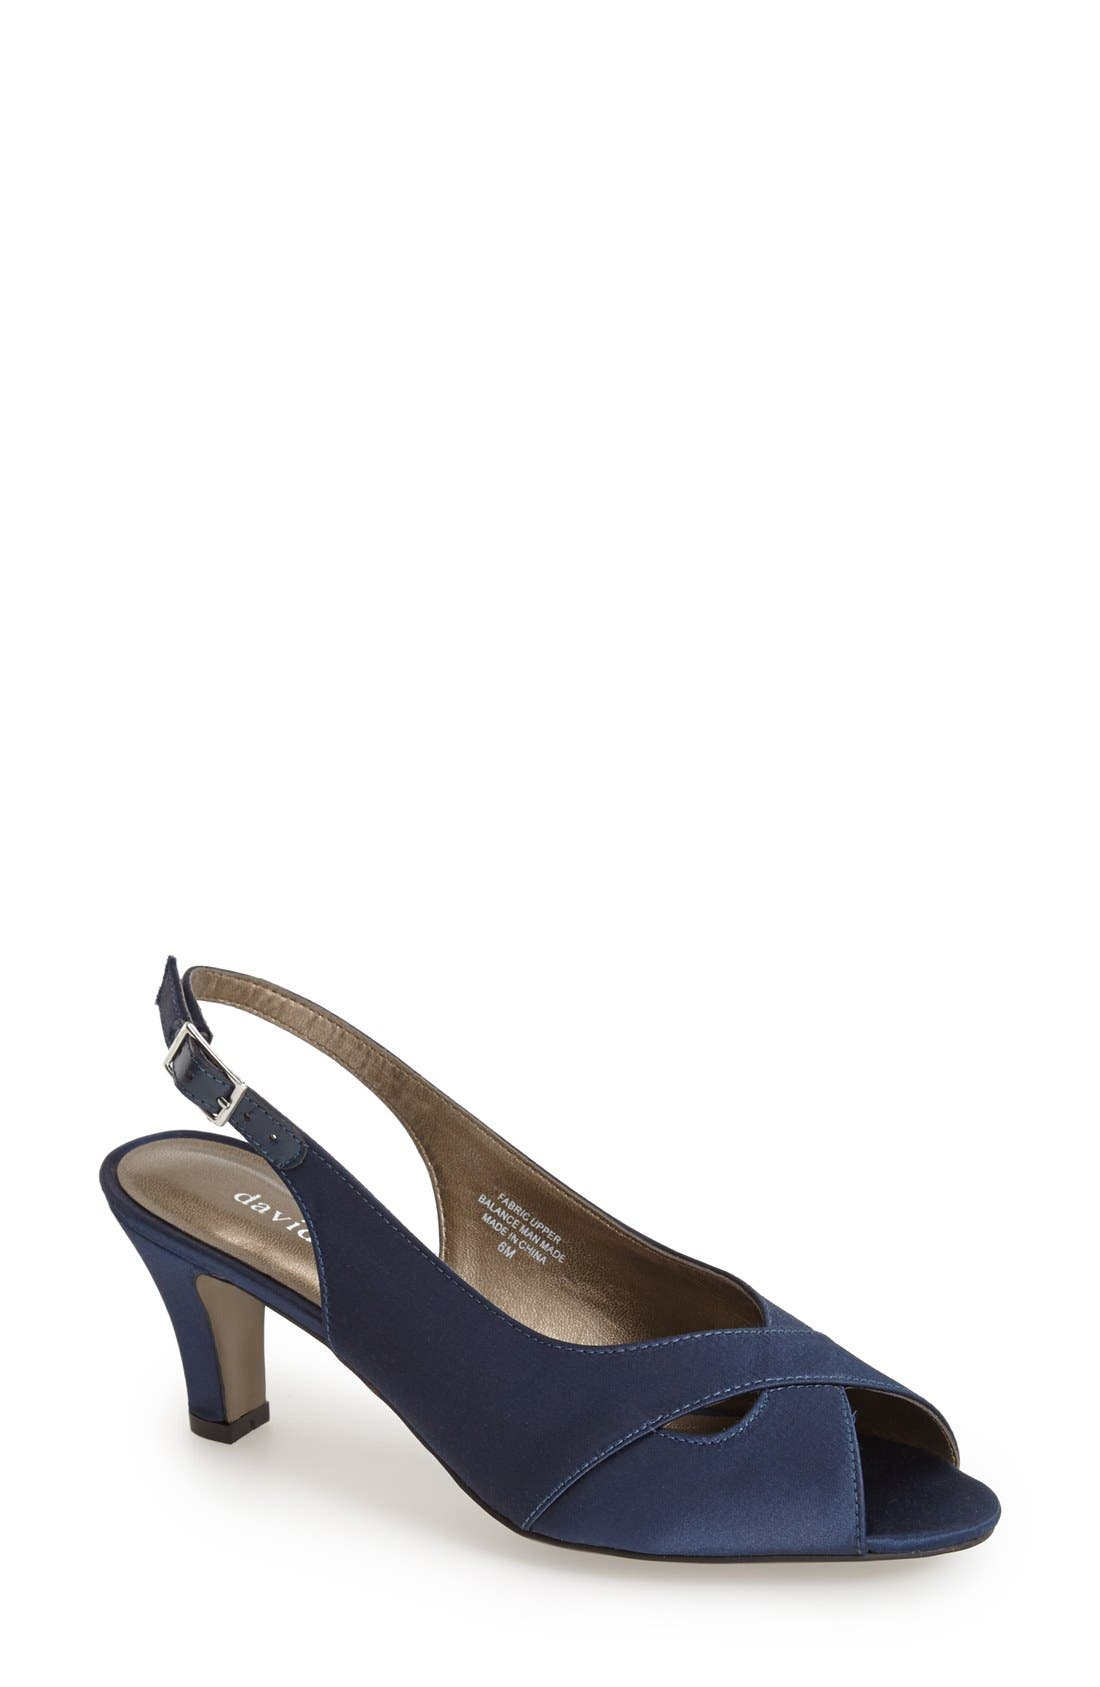 Main Image - David Tate 'Palm' Slingback Satin Sandal (Women)